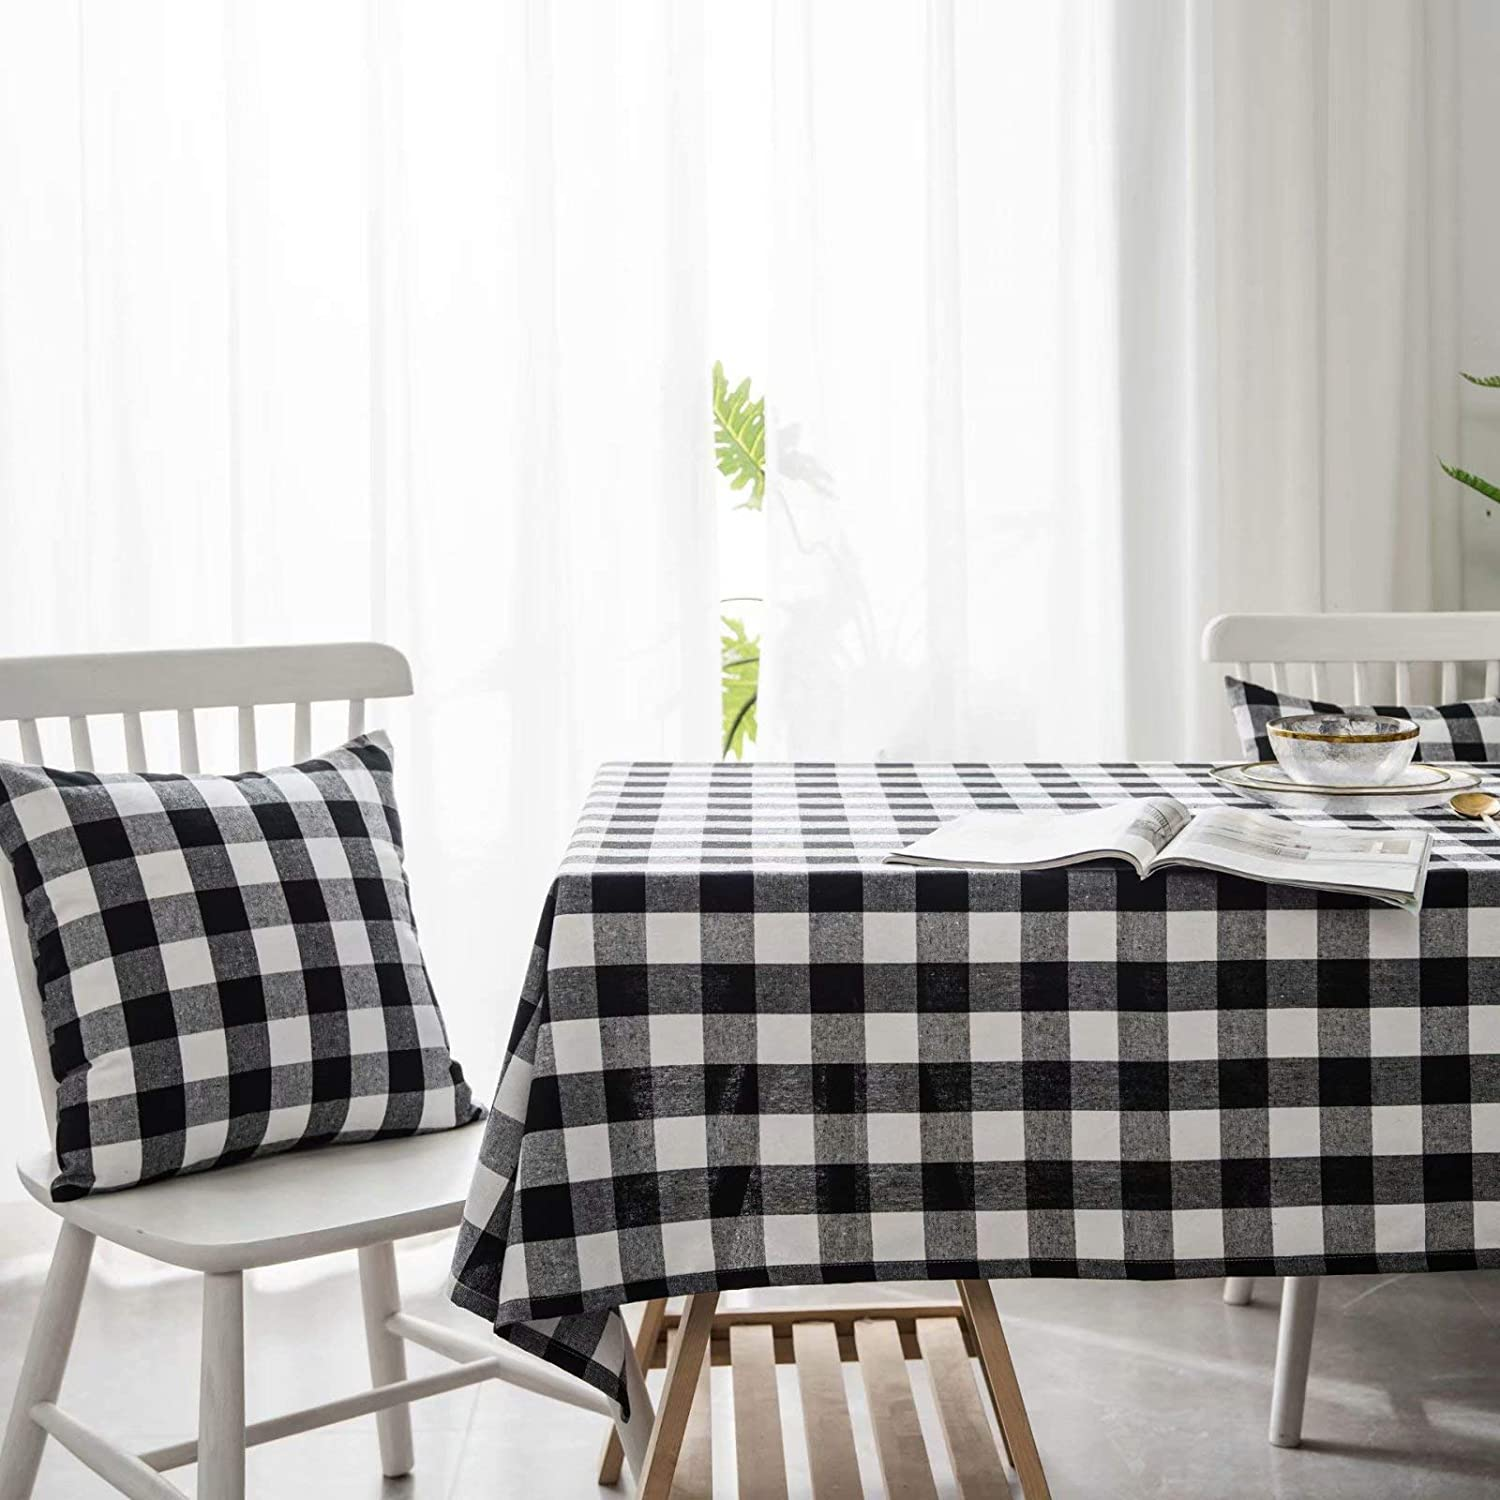 Rectangle - 24 x 24 Cotton Linen Table Cover Kitchen Dining Room Restaurant Party Decoration YQ Park Red and White Buffalo Check Plaid Tablecloth